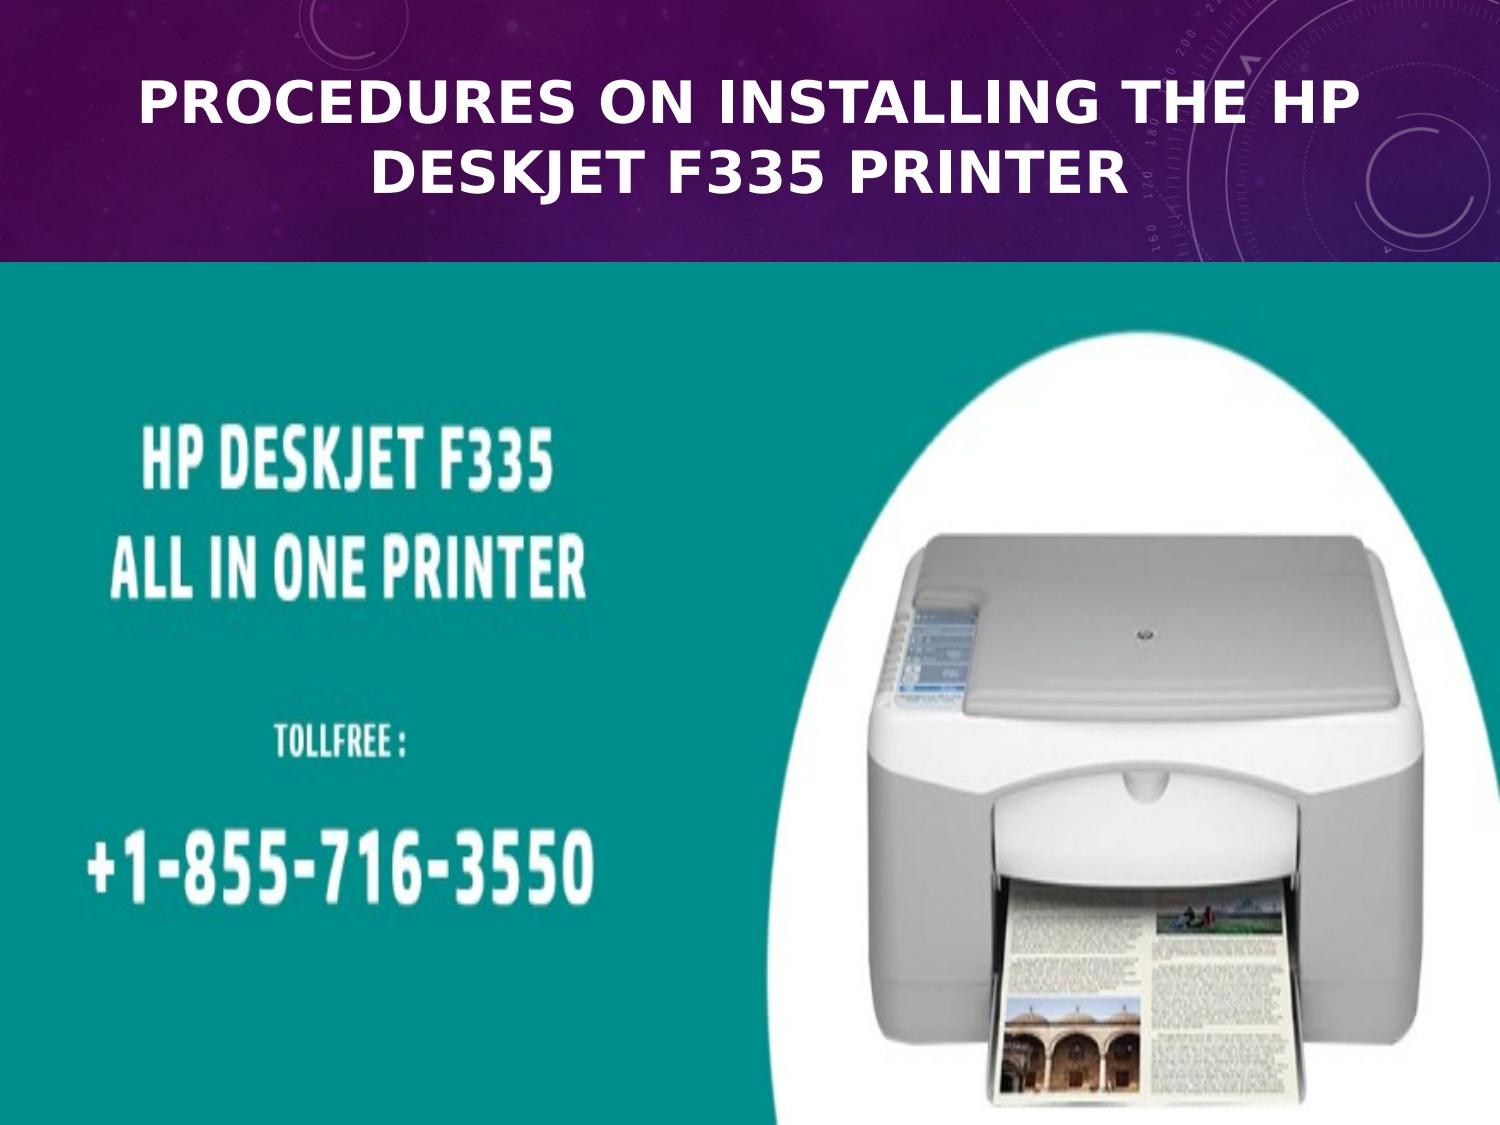 HP PRINTER F335 TREIBER WINDOWS 7